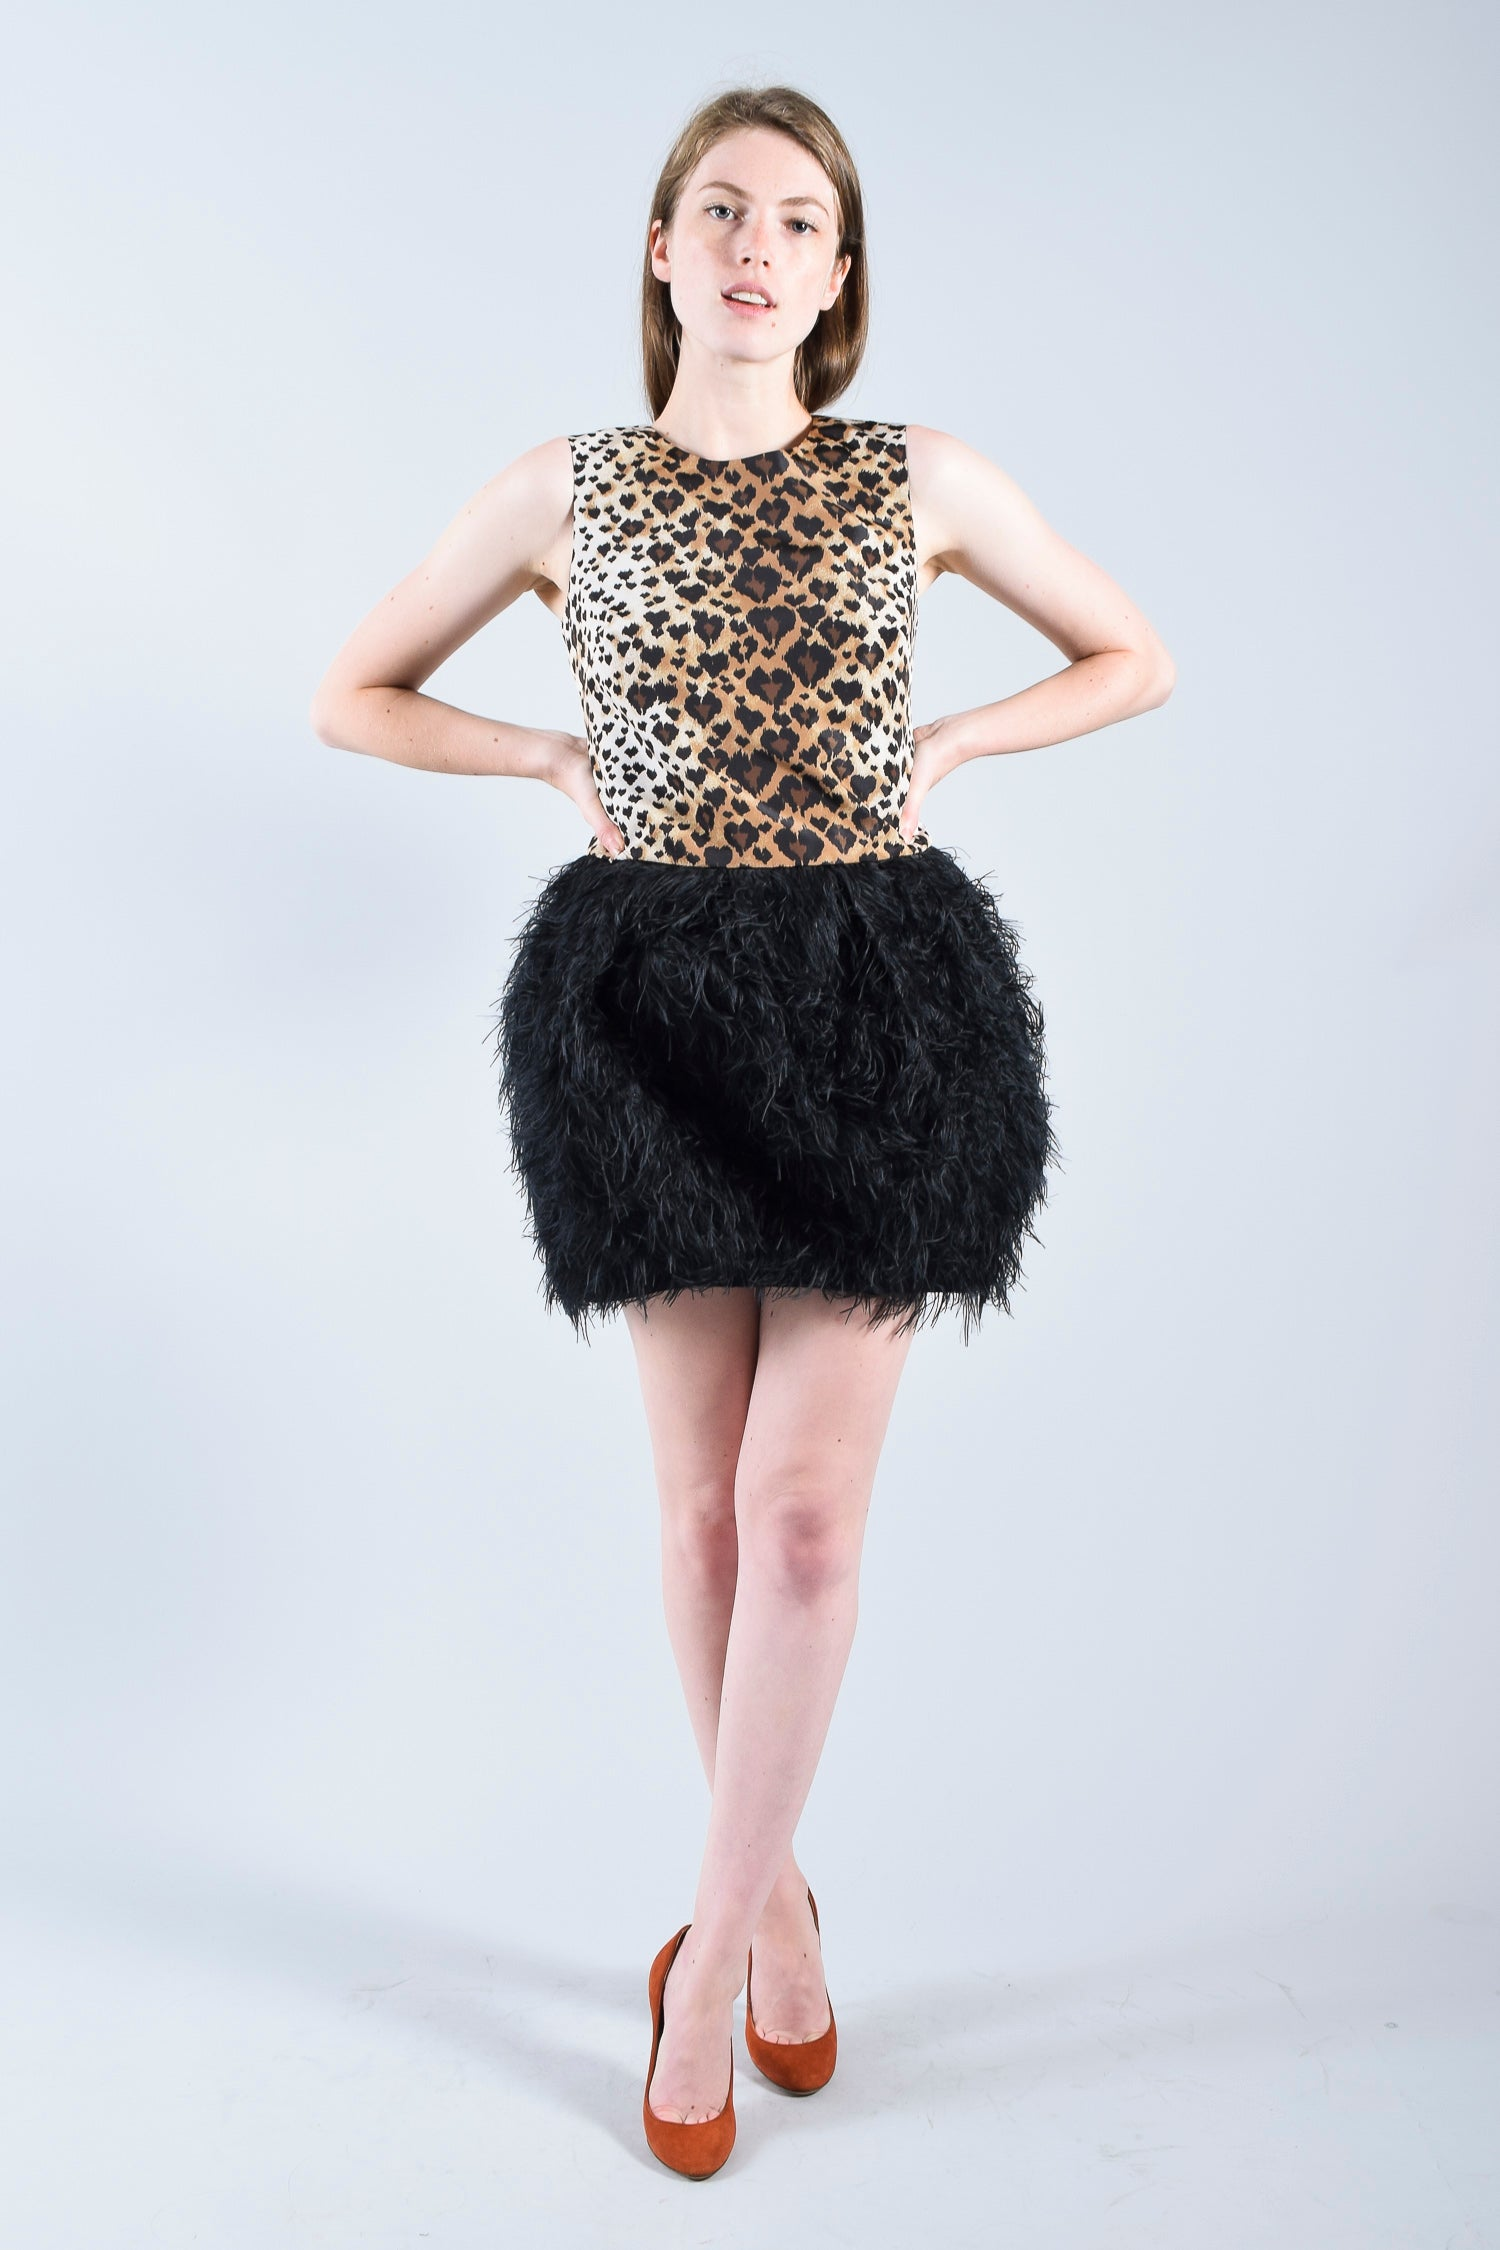 RED Valentino Leopard & Feather Dress sz 38